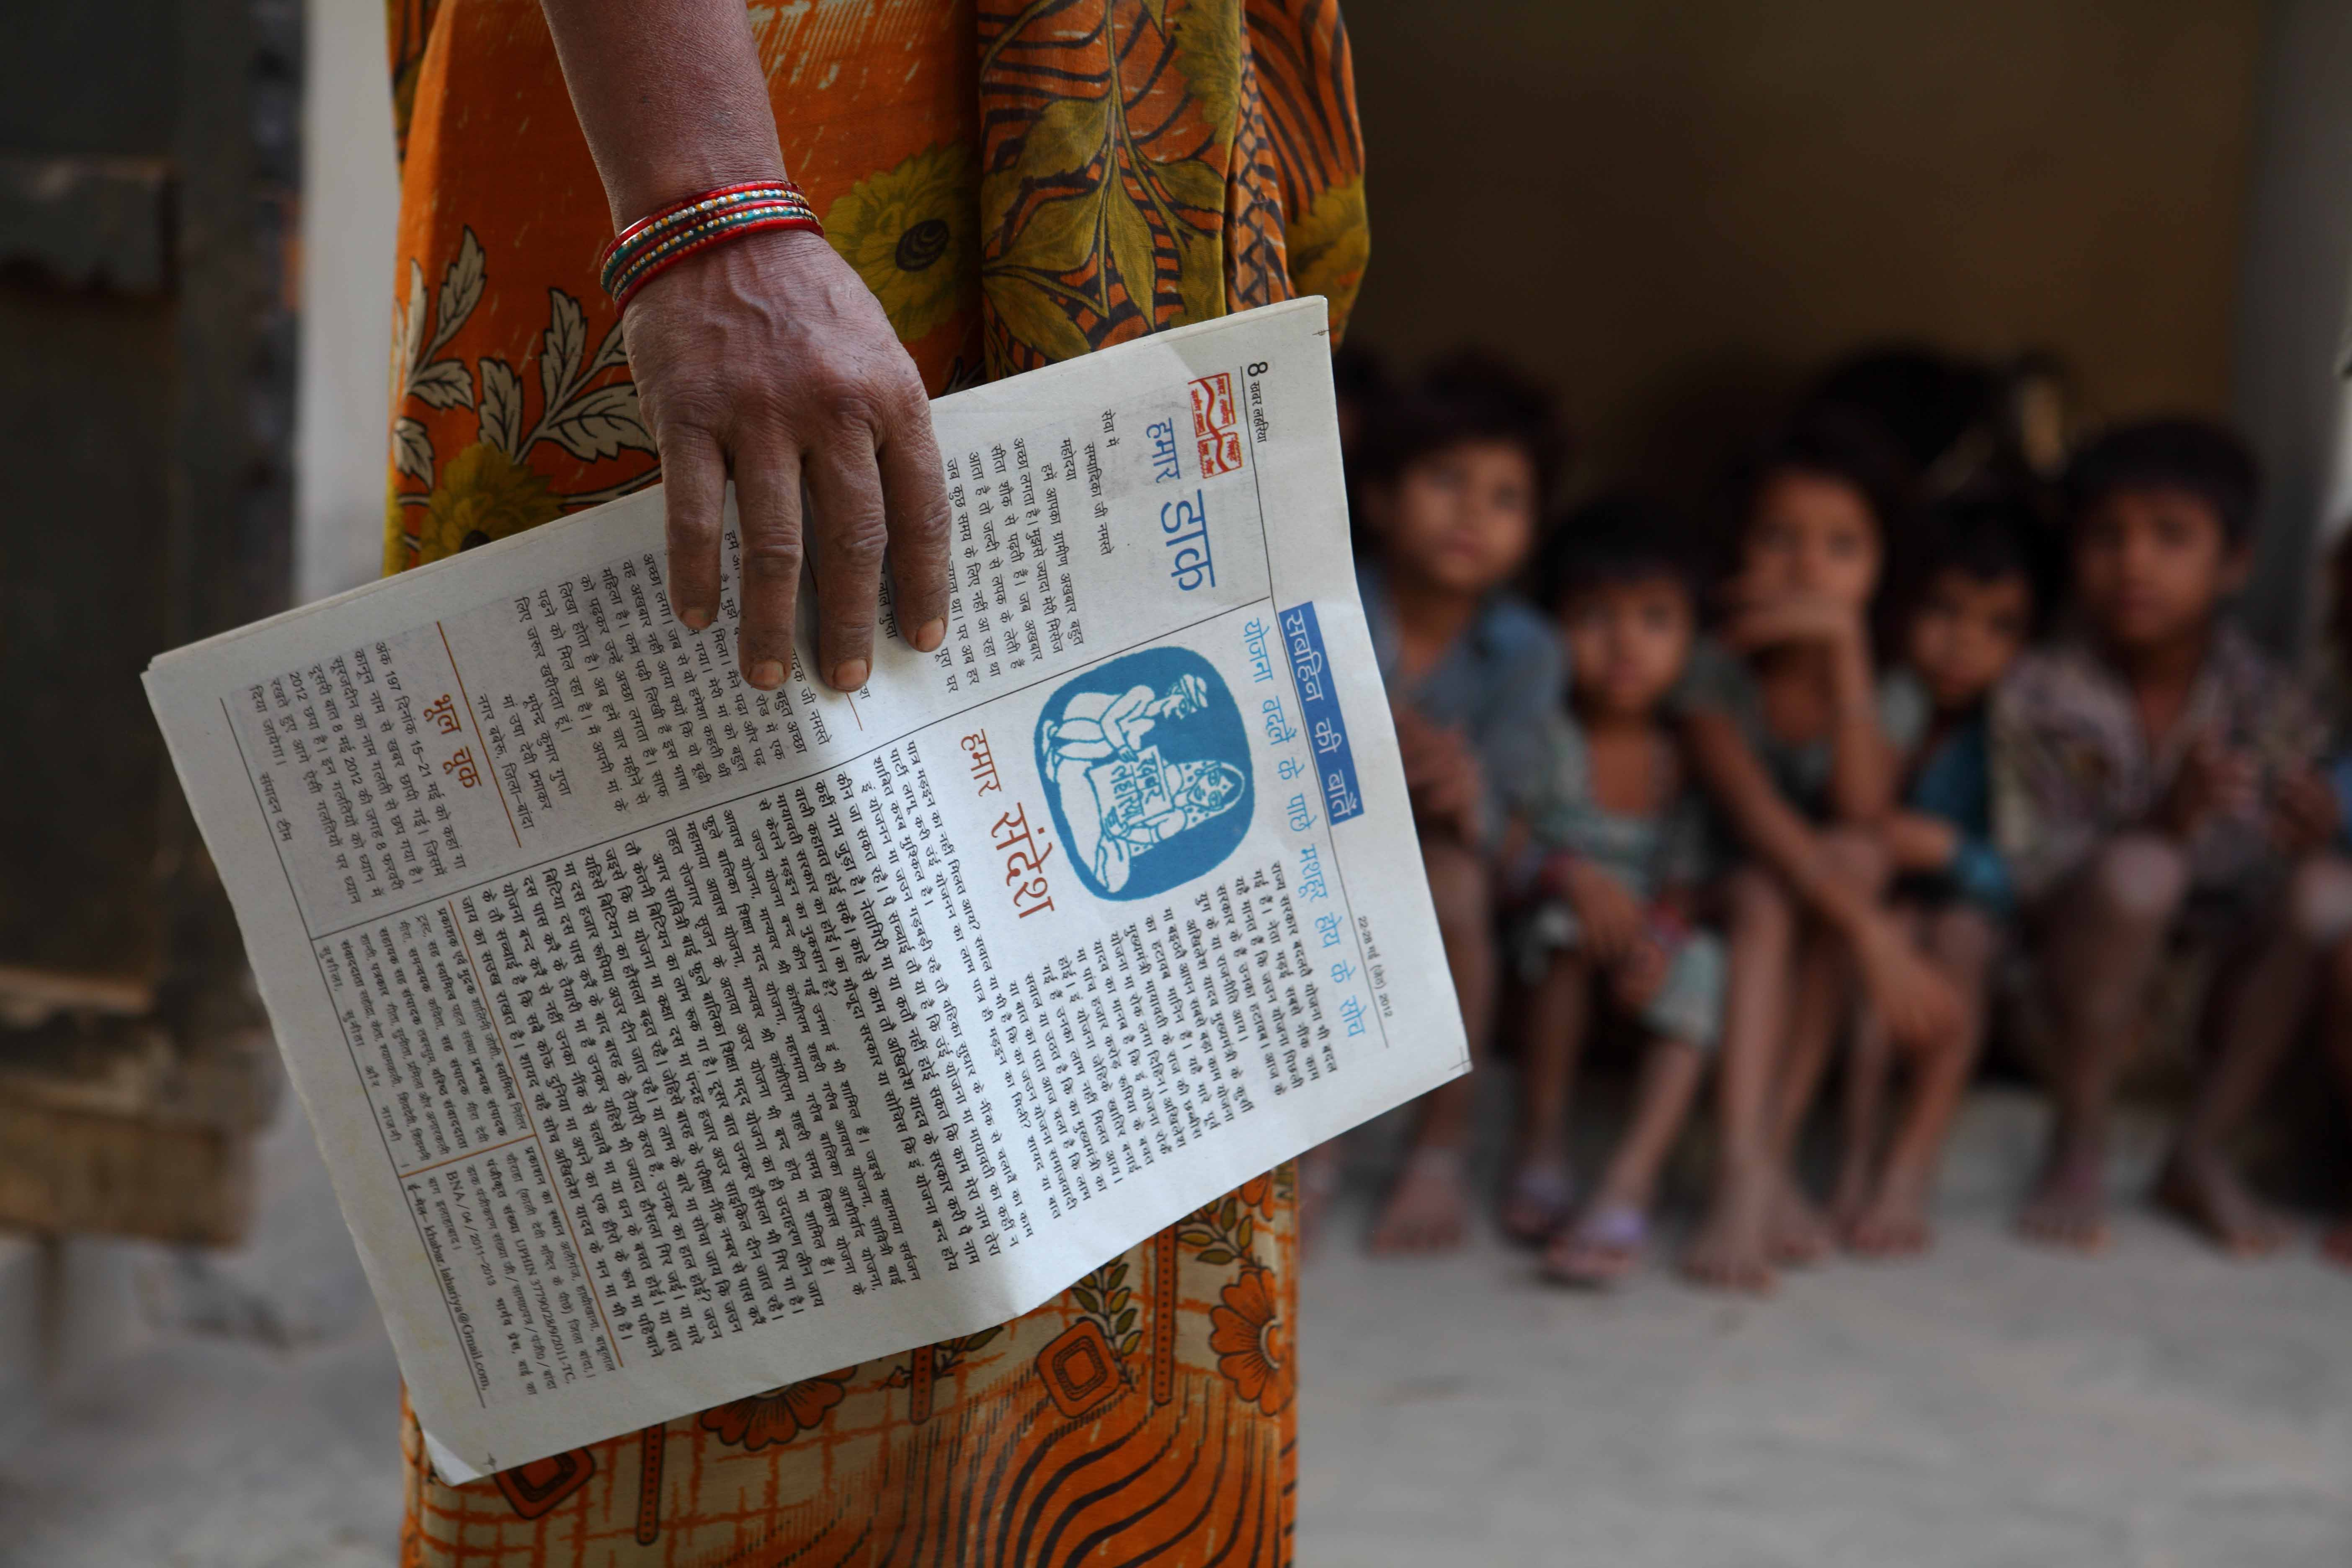 Khabar Lahariya are sold across 600 villages of Uttar Pradesh and Bihar, reaching a readership of 80,000